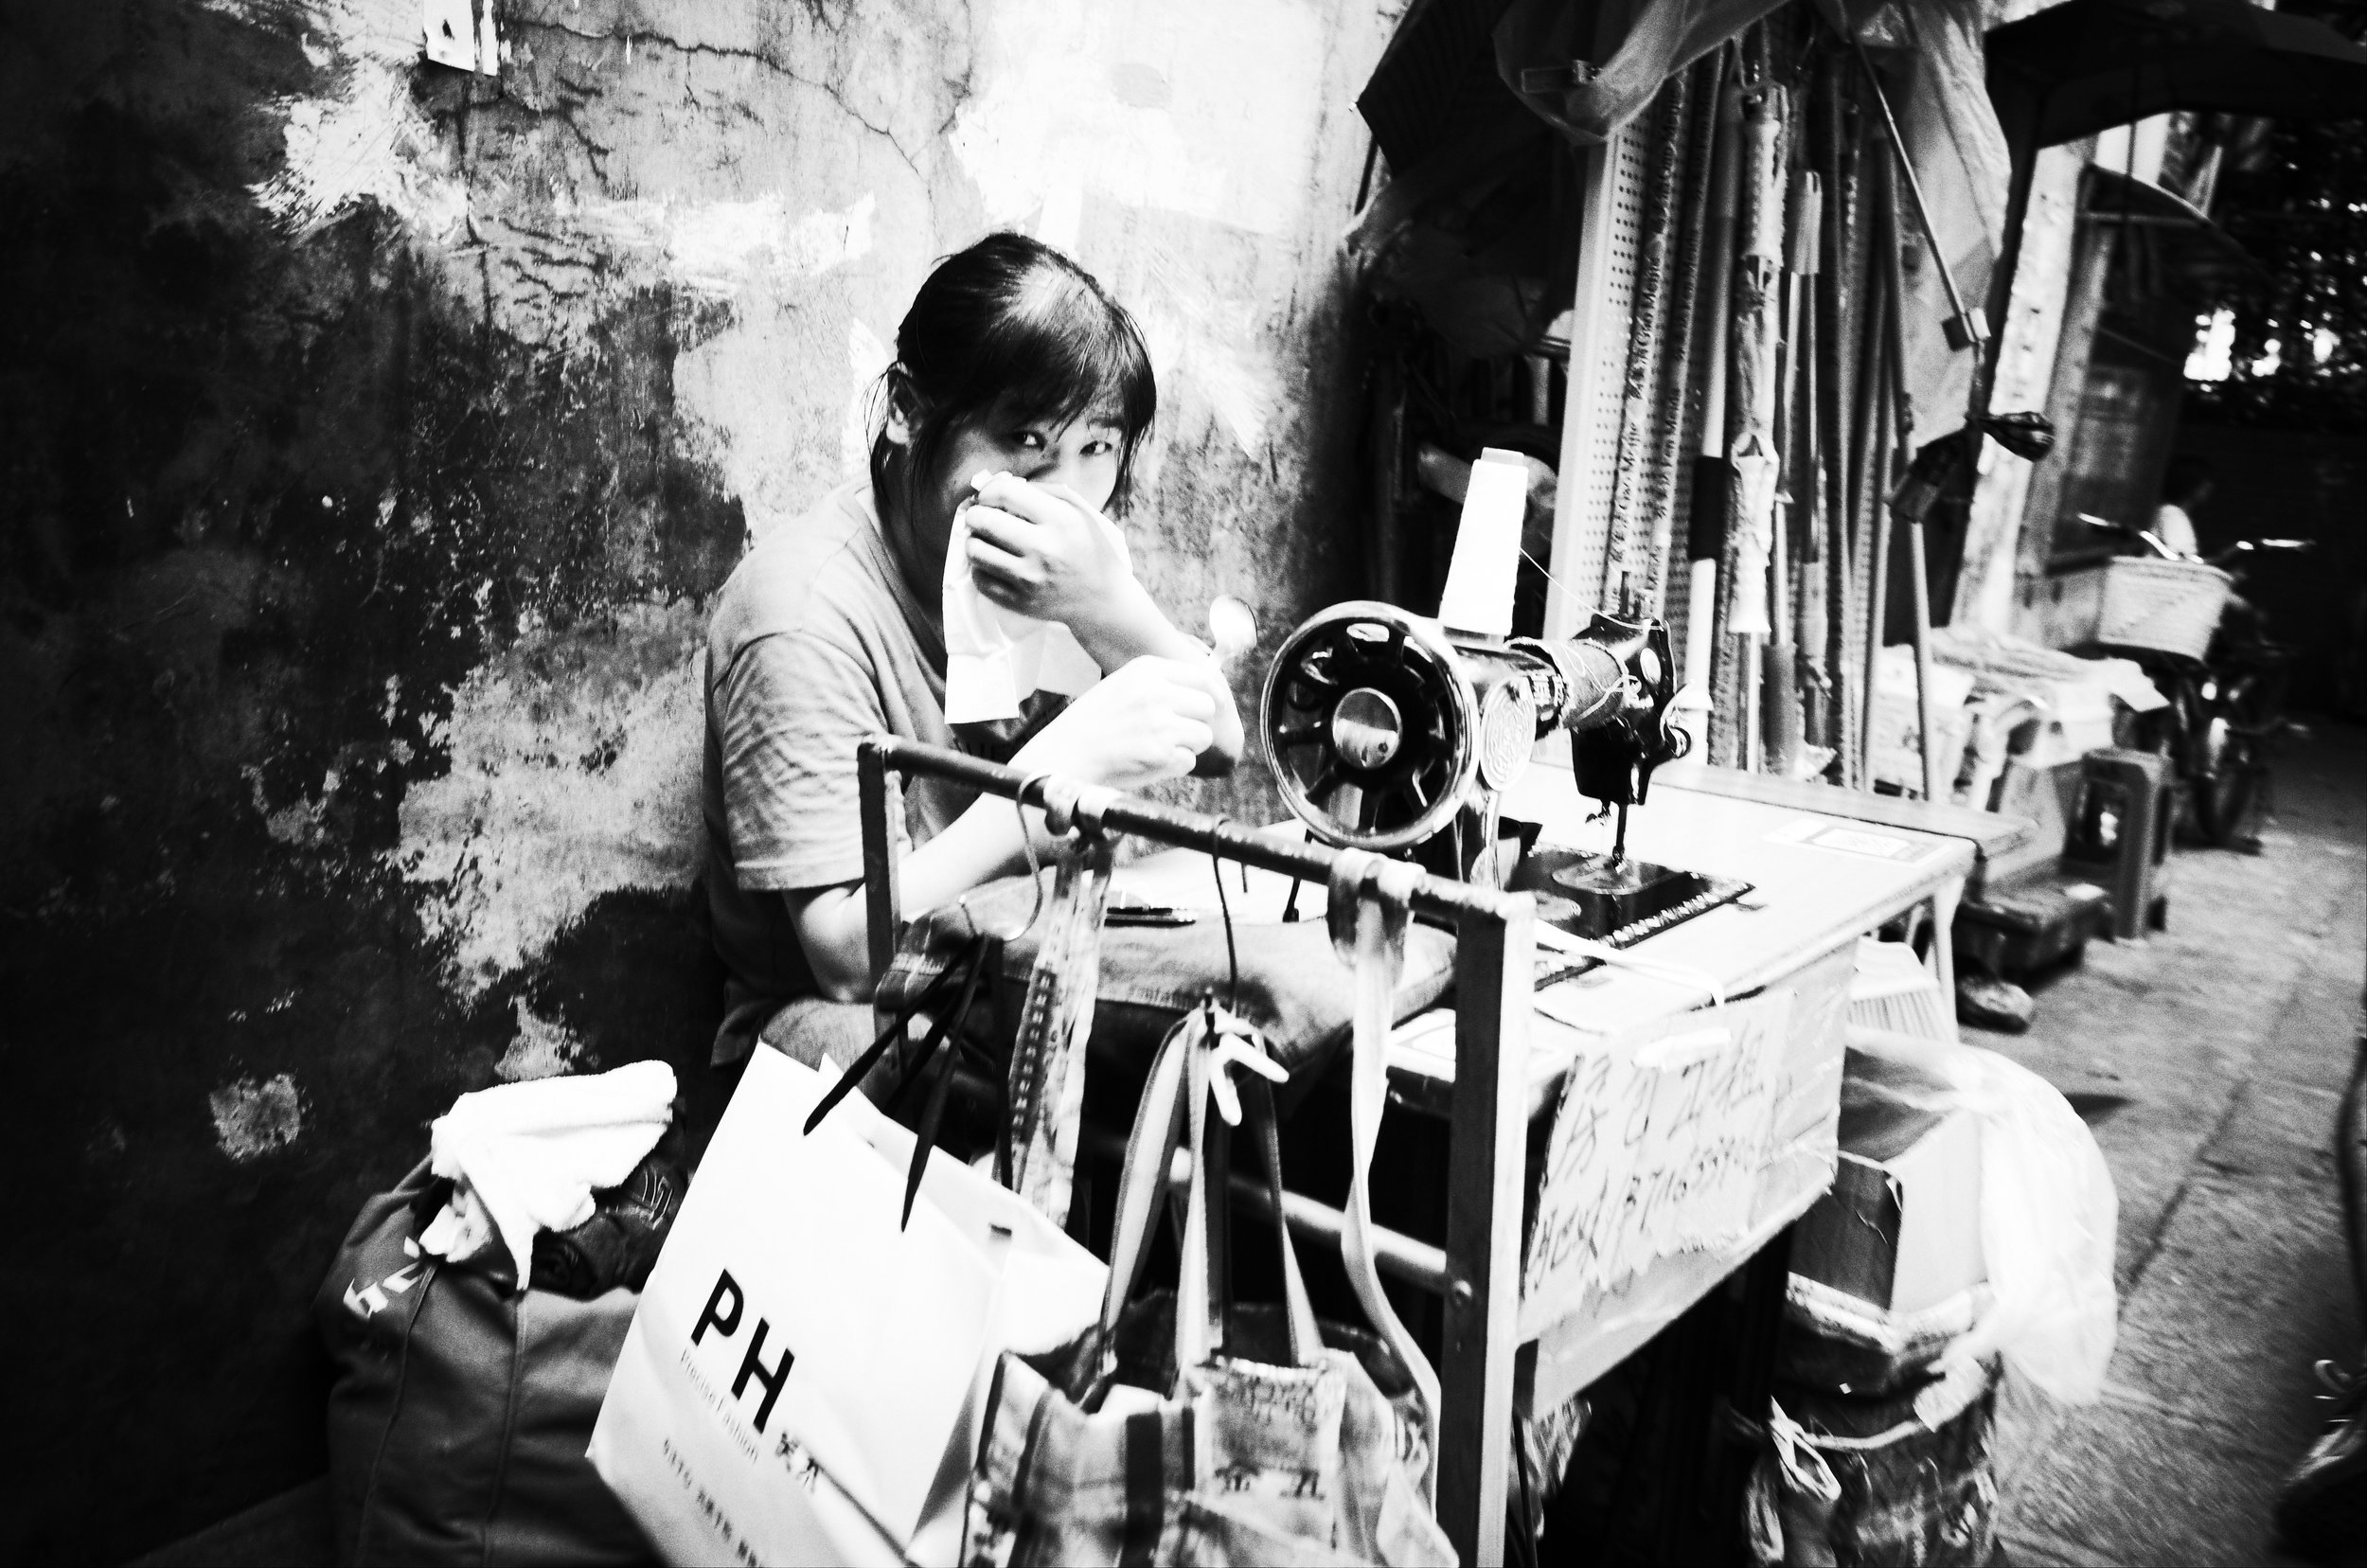 A woman working in the streets